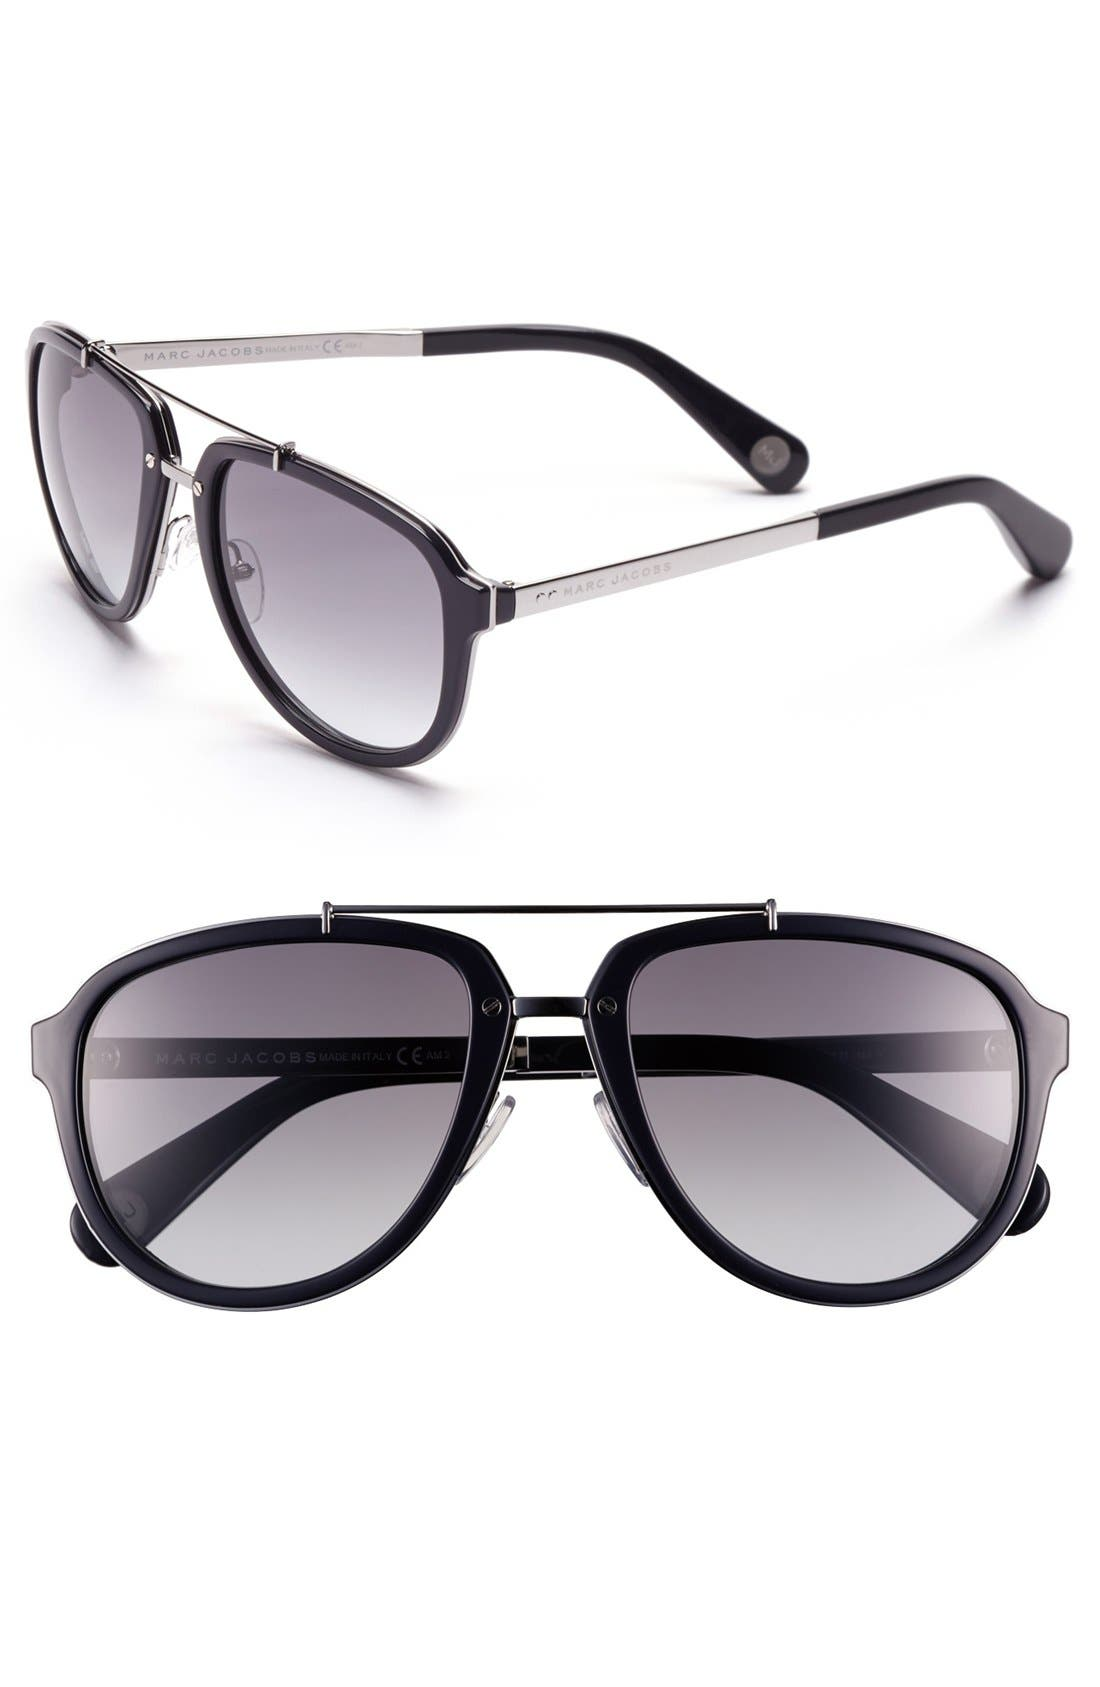 Alternate Image 1 Selected - MARC JACOBS 56mm Aviator Sunglasses